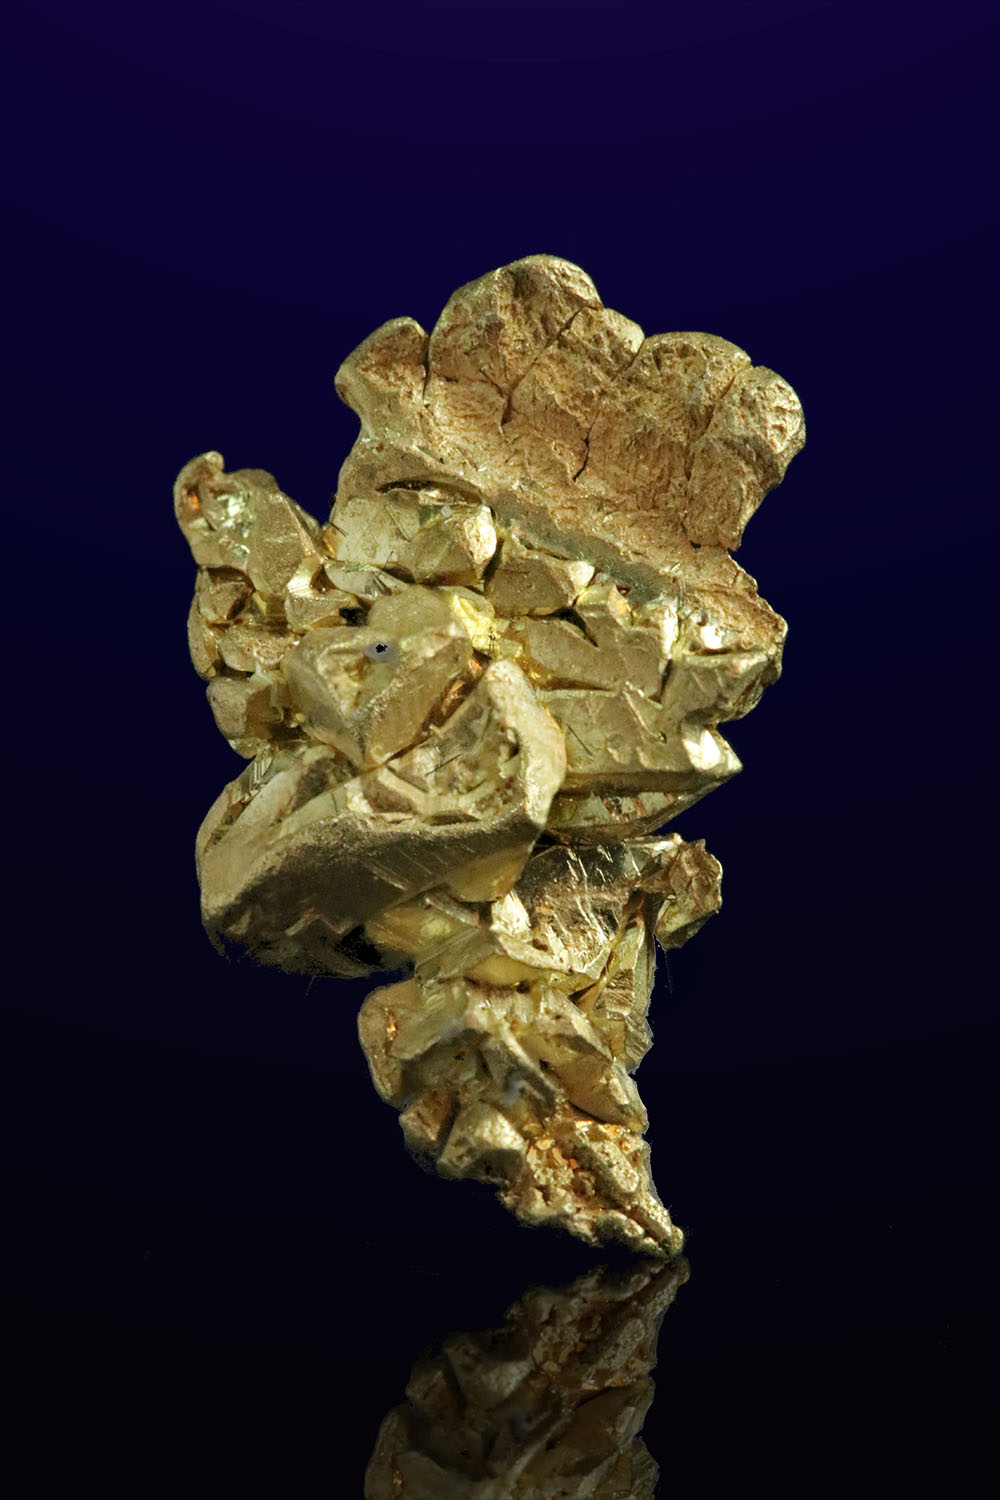 Fantastic Formation - Natural Gold Crystal from Mt. Kare, PNG